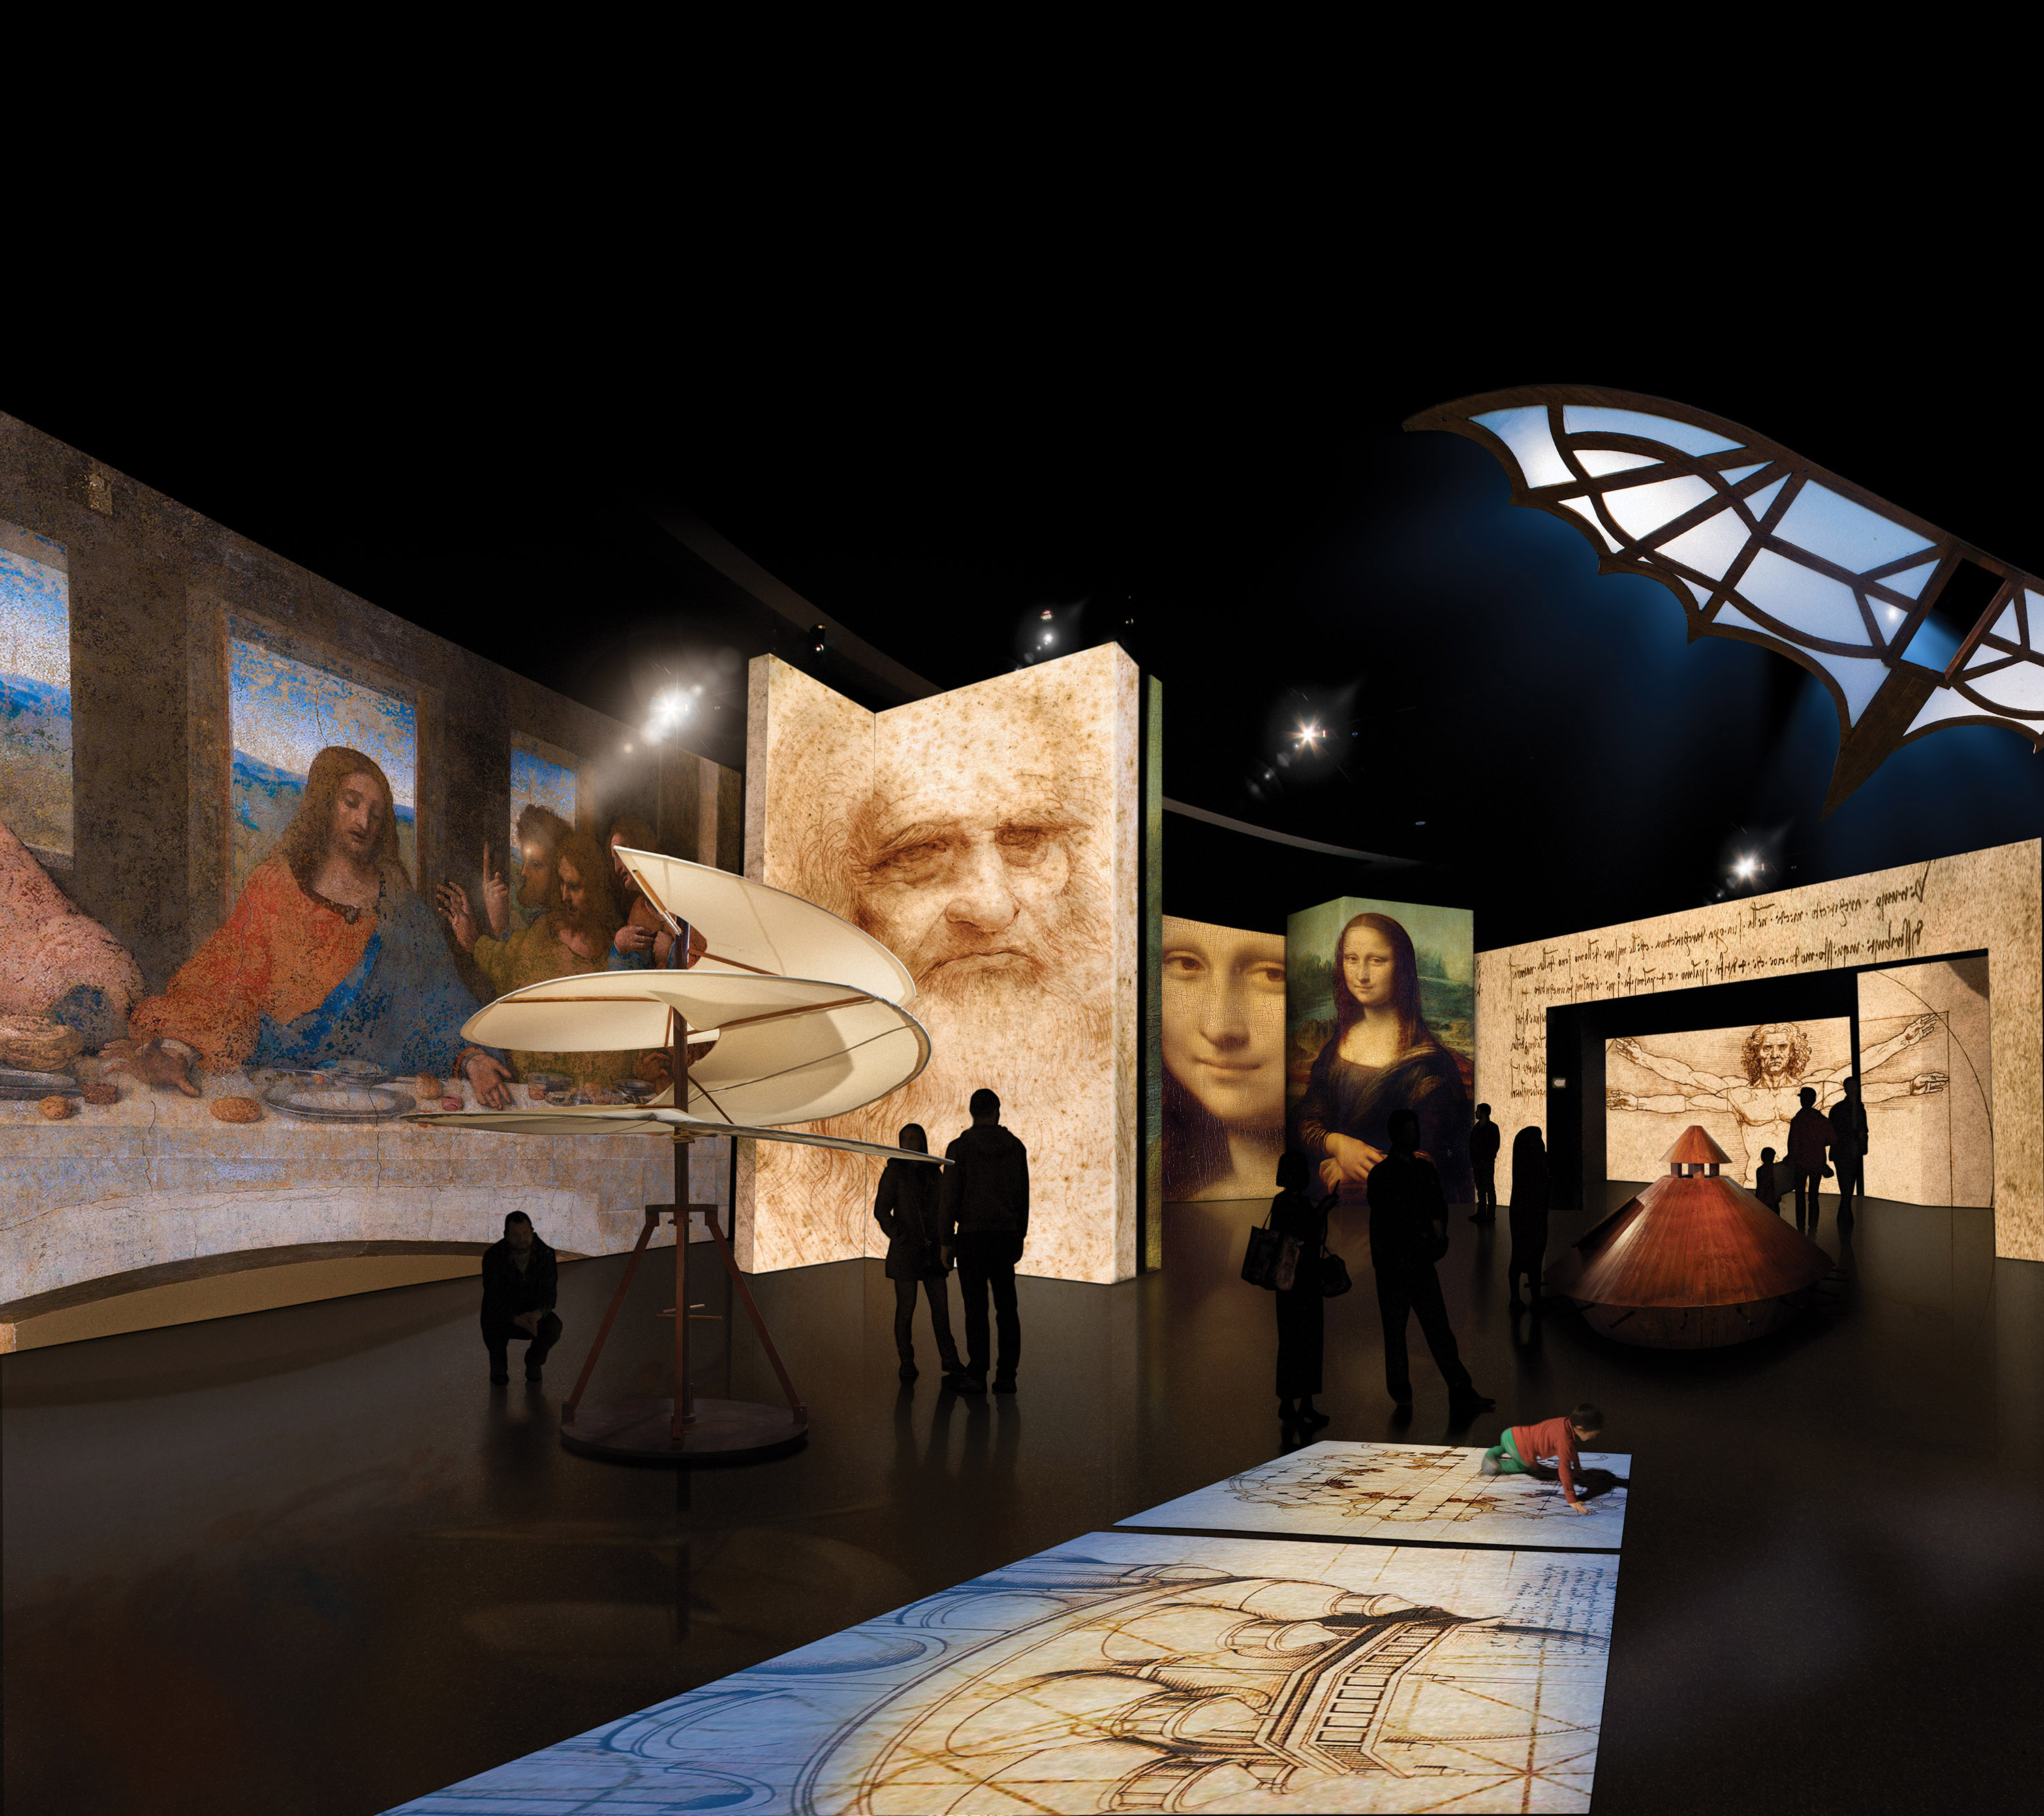 Da Vinci Alive – The Experience Extended Through September 7